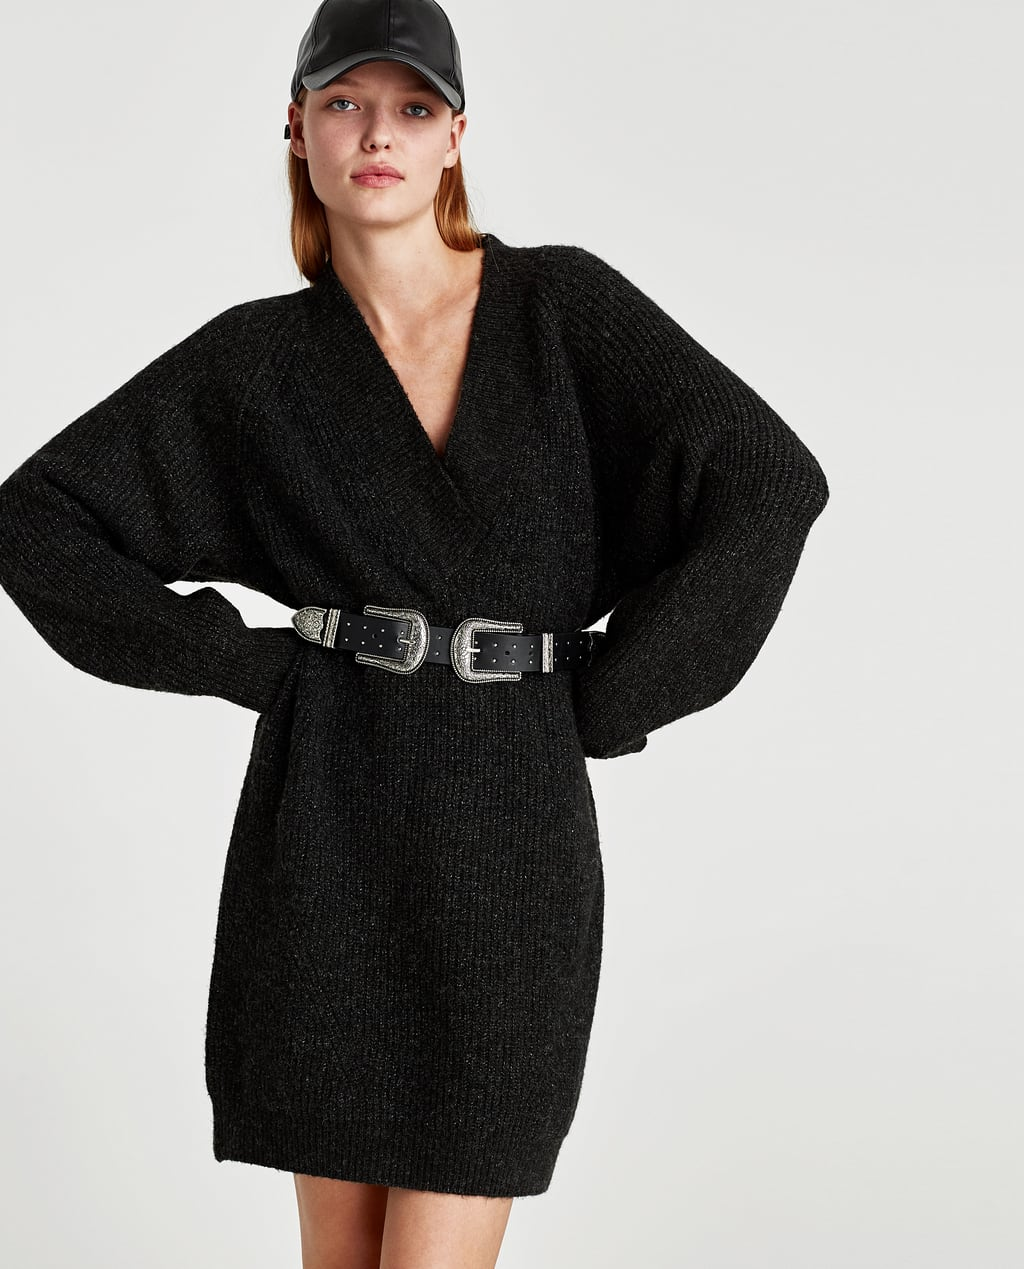 OVERSIZED SWEATER DRESS - Sweaters-KNITWEAR-WOMAN-SALE | ZARA ...